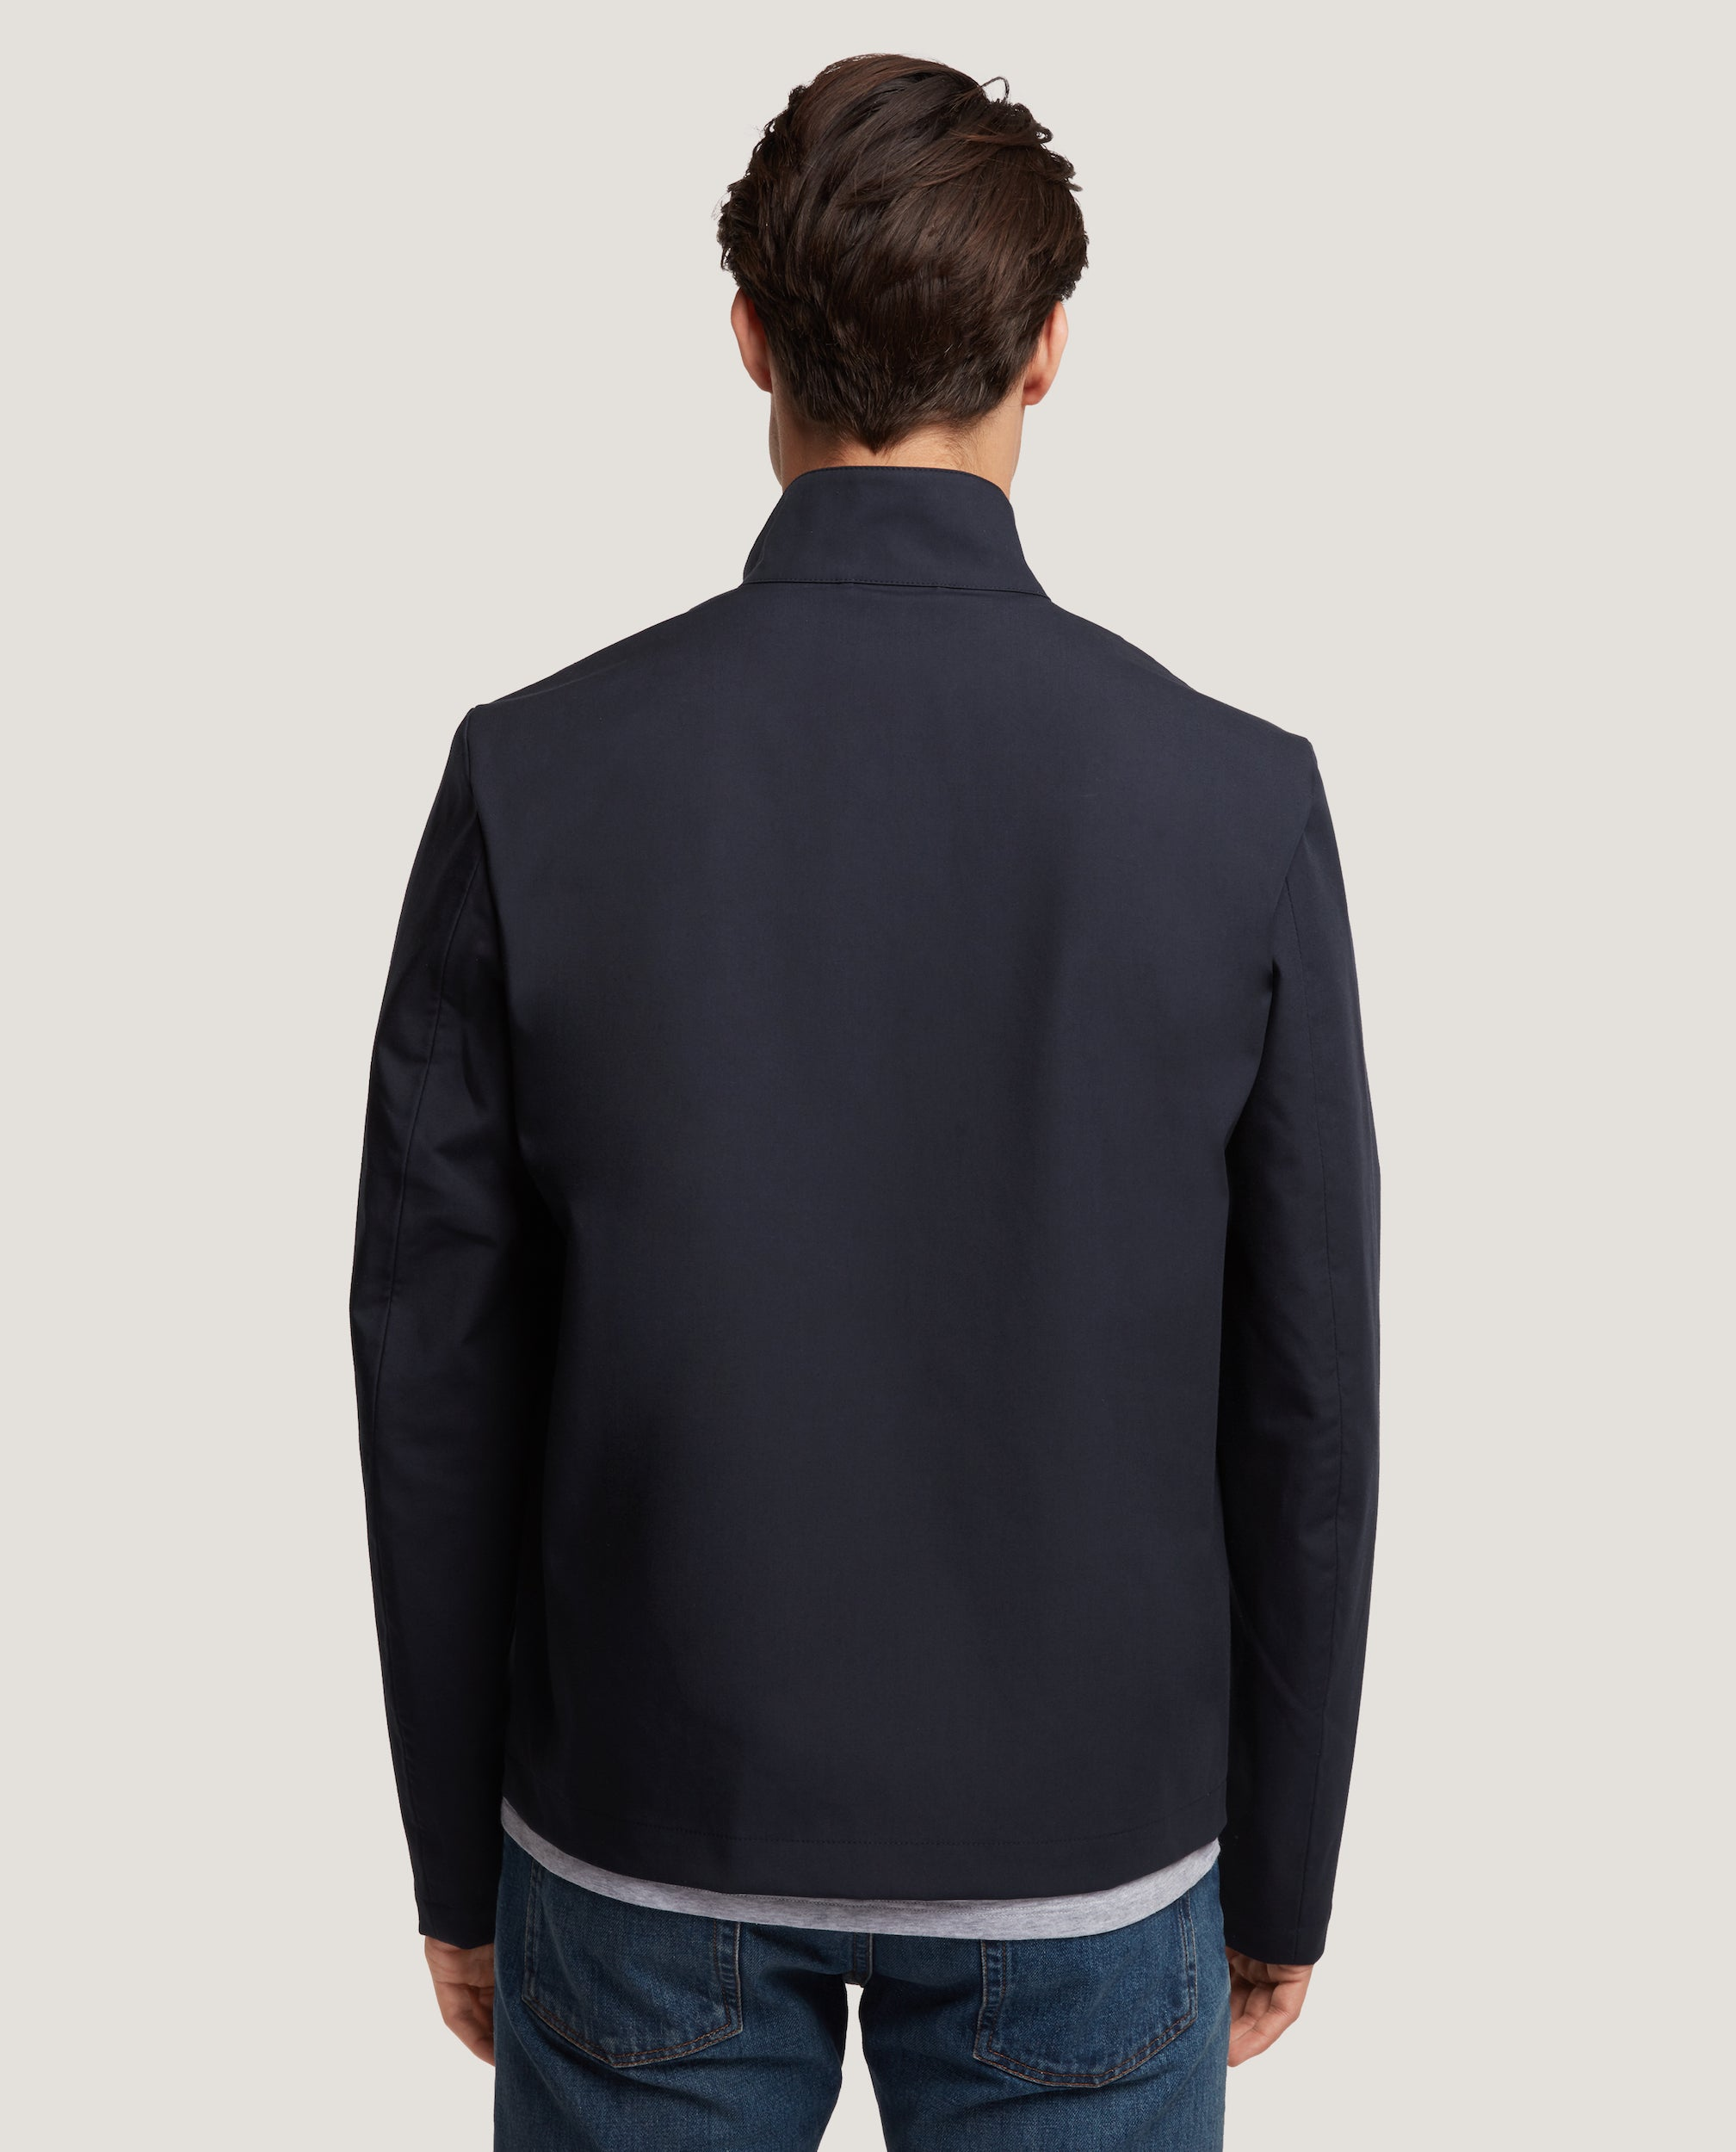 HARVEY Blouson jacket | Night Blue